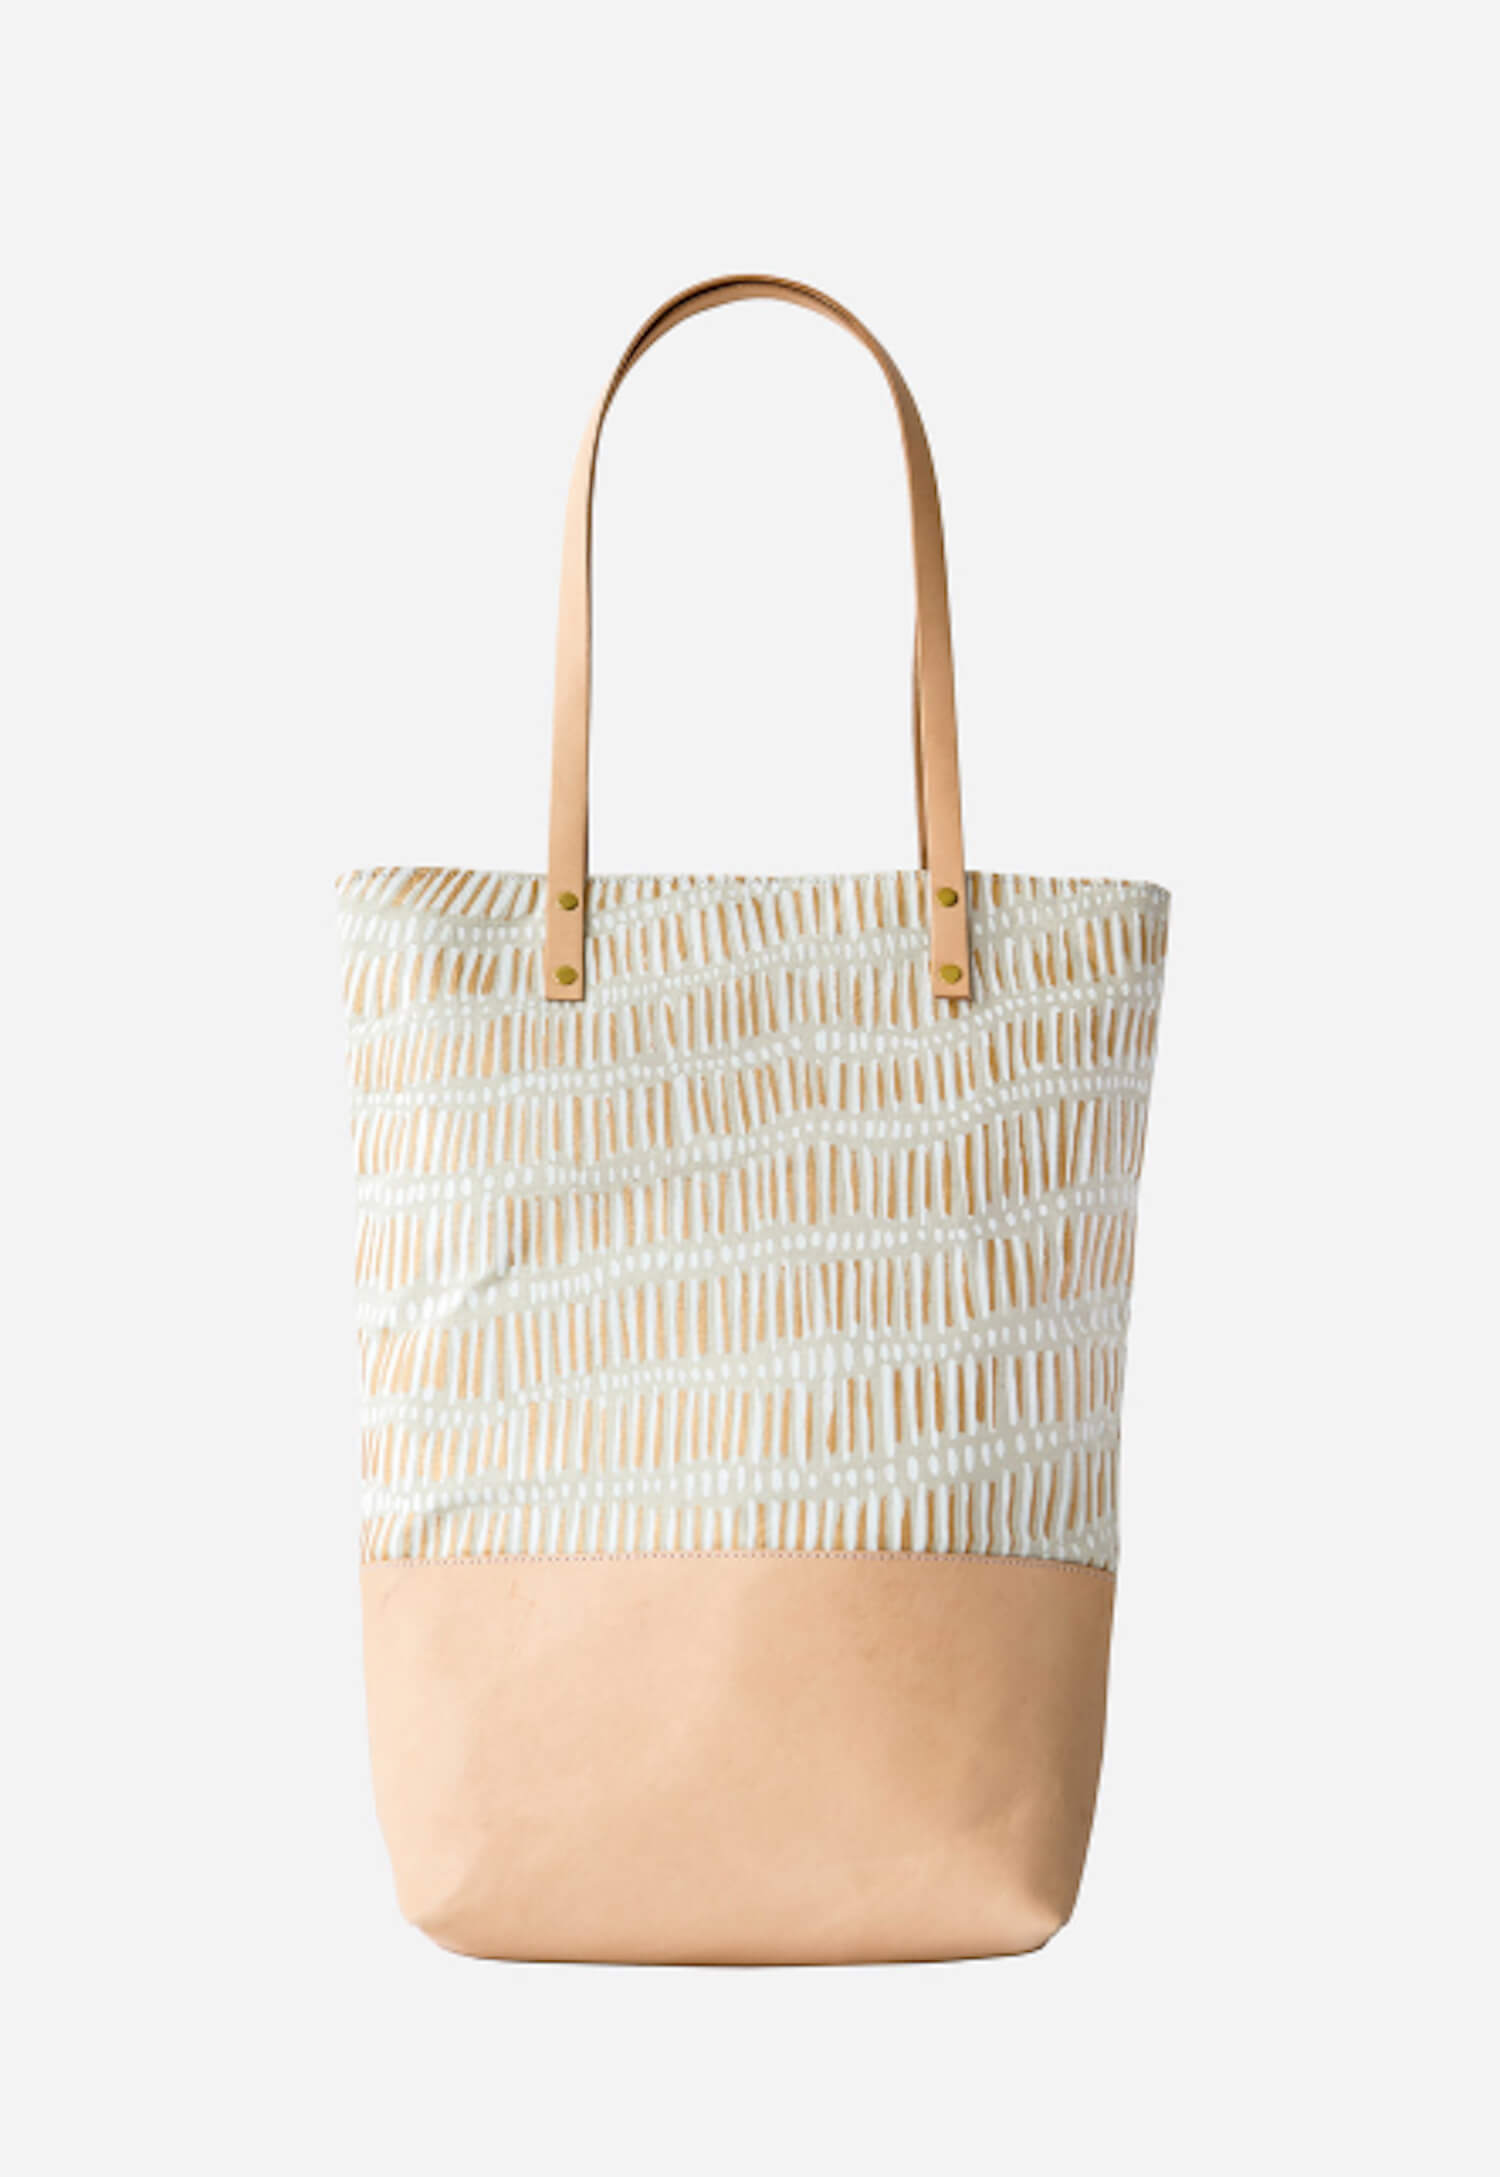 Bag by North Home | The Est Edit: Contemporary Indigenous Artisans | est living